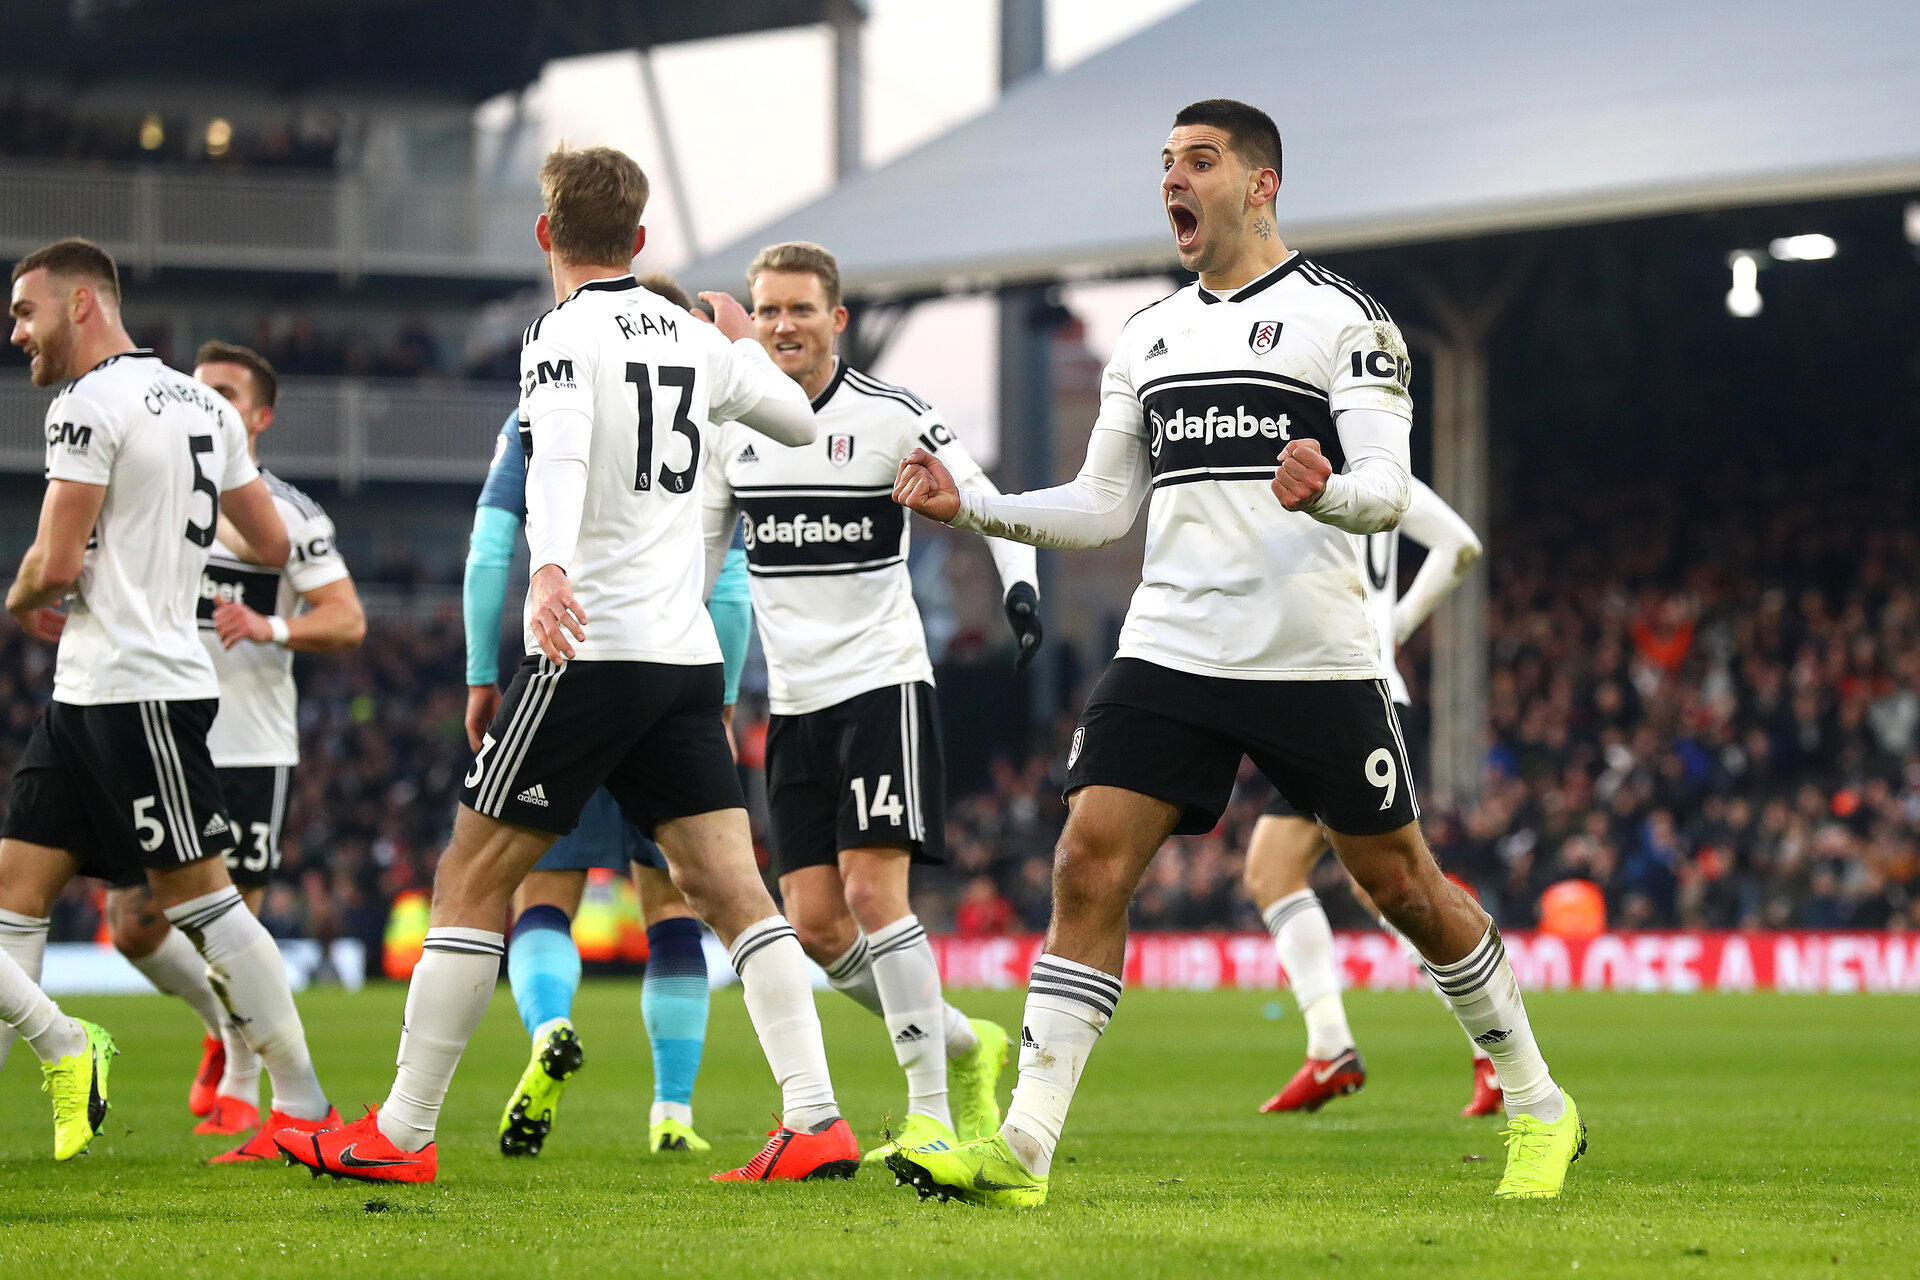 LONDON, ENGLAND - JANUARY 20:  Aleksandar Mitrovic celebrates his sides first goal, an own goal scores by Fernano Llorente of Tottenham (Not pictured) during the Premier League match between Fulham FC and Tottenham Hotspur at Craven Cottage on January 20, 2019 in London, United Kingdom. (Photo by Clive Rose/Getty Images)